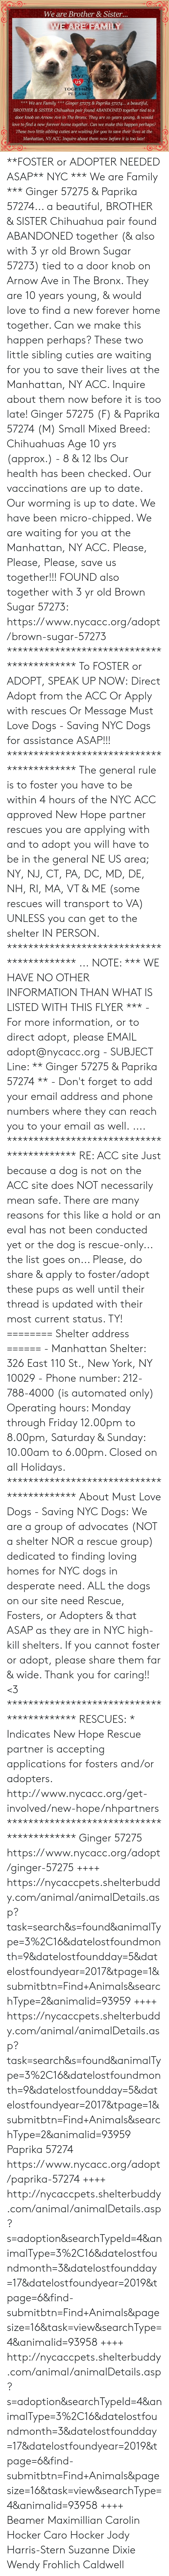 Fröhlich: We are Brother & Sister.  WE ARE FAMILY  US  TOGETH  PLEASE  We are Family  Ginger 57275 & Paprika 57274.. a beautiful,  BROTHER& SISTER Chihuahua pair found ABANDONED together tied to a  door knob on Arnow Ave in The Bronx. They are 10 years young, & would  love to find a new forever home together. Can we make this happen perhaps?  These two little sibling cuties are waiting for you to save their lives at theO  Manhattan, NY ACC. Inquire about them now before it is too late! **FOSTER or ADOPTER NEEDED ASAP** NYC *** We are Family *** Ginger 57275 & Paprika 57274... a beautiful, BROTHER & SISTER Chihuahua pair found ABANDONED together (& also with 3 yr old Brown Sugar 57273) tied to a door knob on Arnow Ave in The Bronx. They are 10 years young, & would love to find a new forever home together. Can we make this happen perhaps? These two little sibling cuties are waiting for you to save their lives at the Manhattan, NY ACC. Inquire about them now before it is too late!  Ginger 57275 (F) & Paprika 57274 (M) Small Mixed Breed: Chihuahuas Age 10 yrs (approx.) - 8 & 12 lbs Our health has been checked.  Our vaccinations are up to date. Our worming is up to date.  We have been micro-chipped.  We are waiting for you at the Manhattan, NY ACC.  Please, Please, Please, save us together!!!   FOUND also together with 3 yr old Brown Sugar 57273:  https://www.nycacc.org/adopt/brown-sugar-57273  ****************************************** To FOSTER or ADOPT, SPEAK UP NOW:  Direct Adopt from the ACC Or Apply with rescues Or Message Must Love Dogs - Saving NYC Dogs  for assistance ASAP!!! ******************************************  The general rule is to foster you have to be within 4 hours of the NYC ACC approved New Hope partner rescues you are applying with and to adopt you will have to be in the general NE US area; NY, NJ, CT, PA, DC, MD, DE, NH, RI, MA, VT & ME (some rescues will transport to VA) UNLESS you can get to the shelter IN PERSON.  ****************************